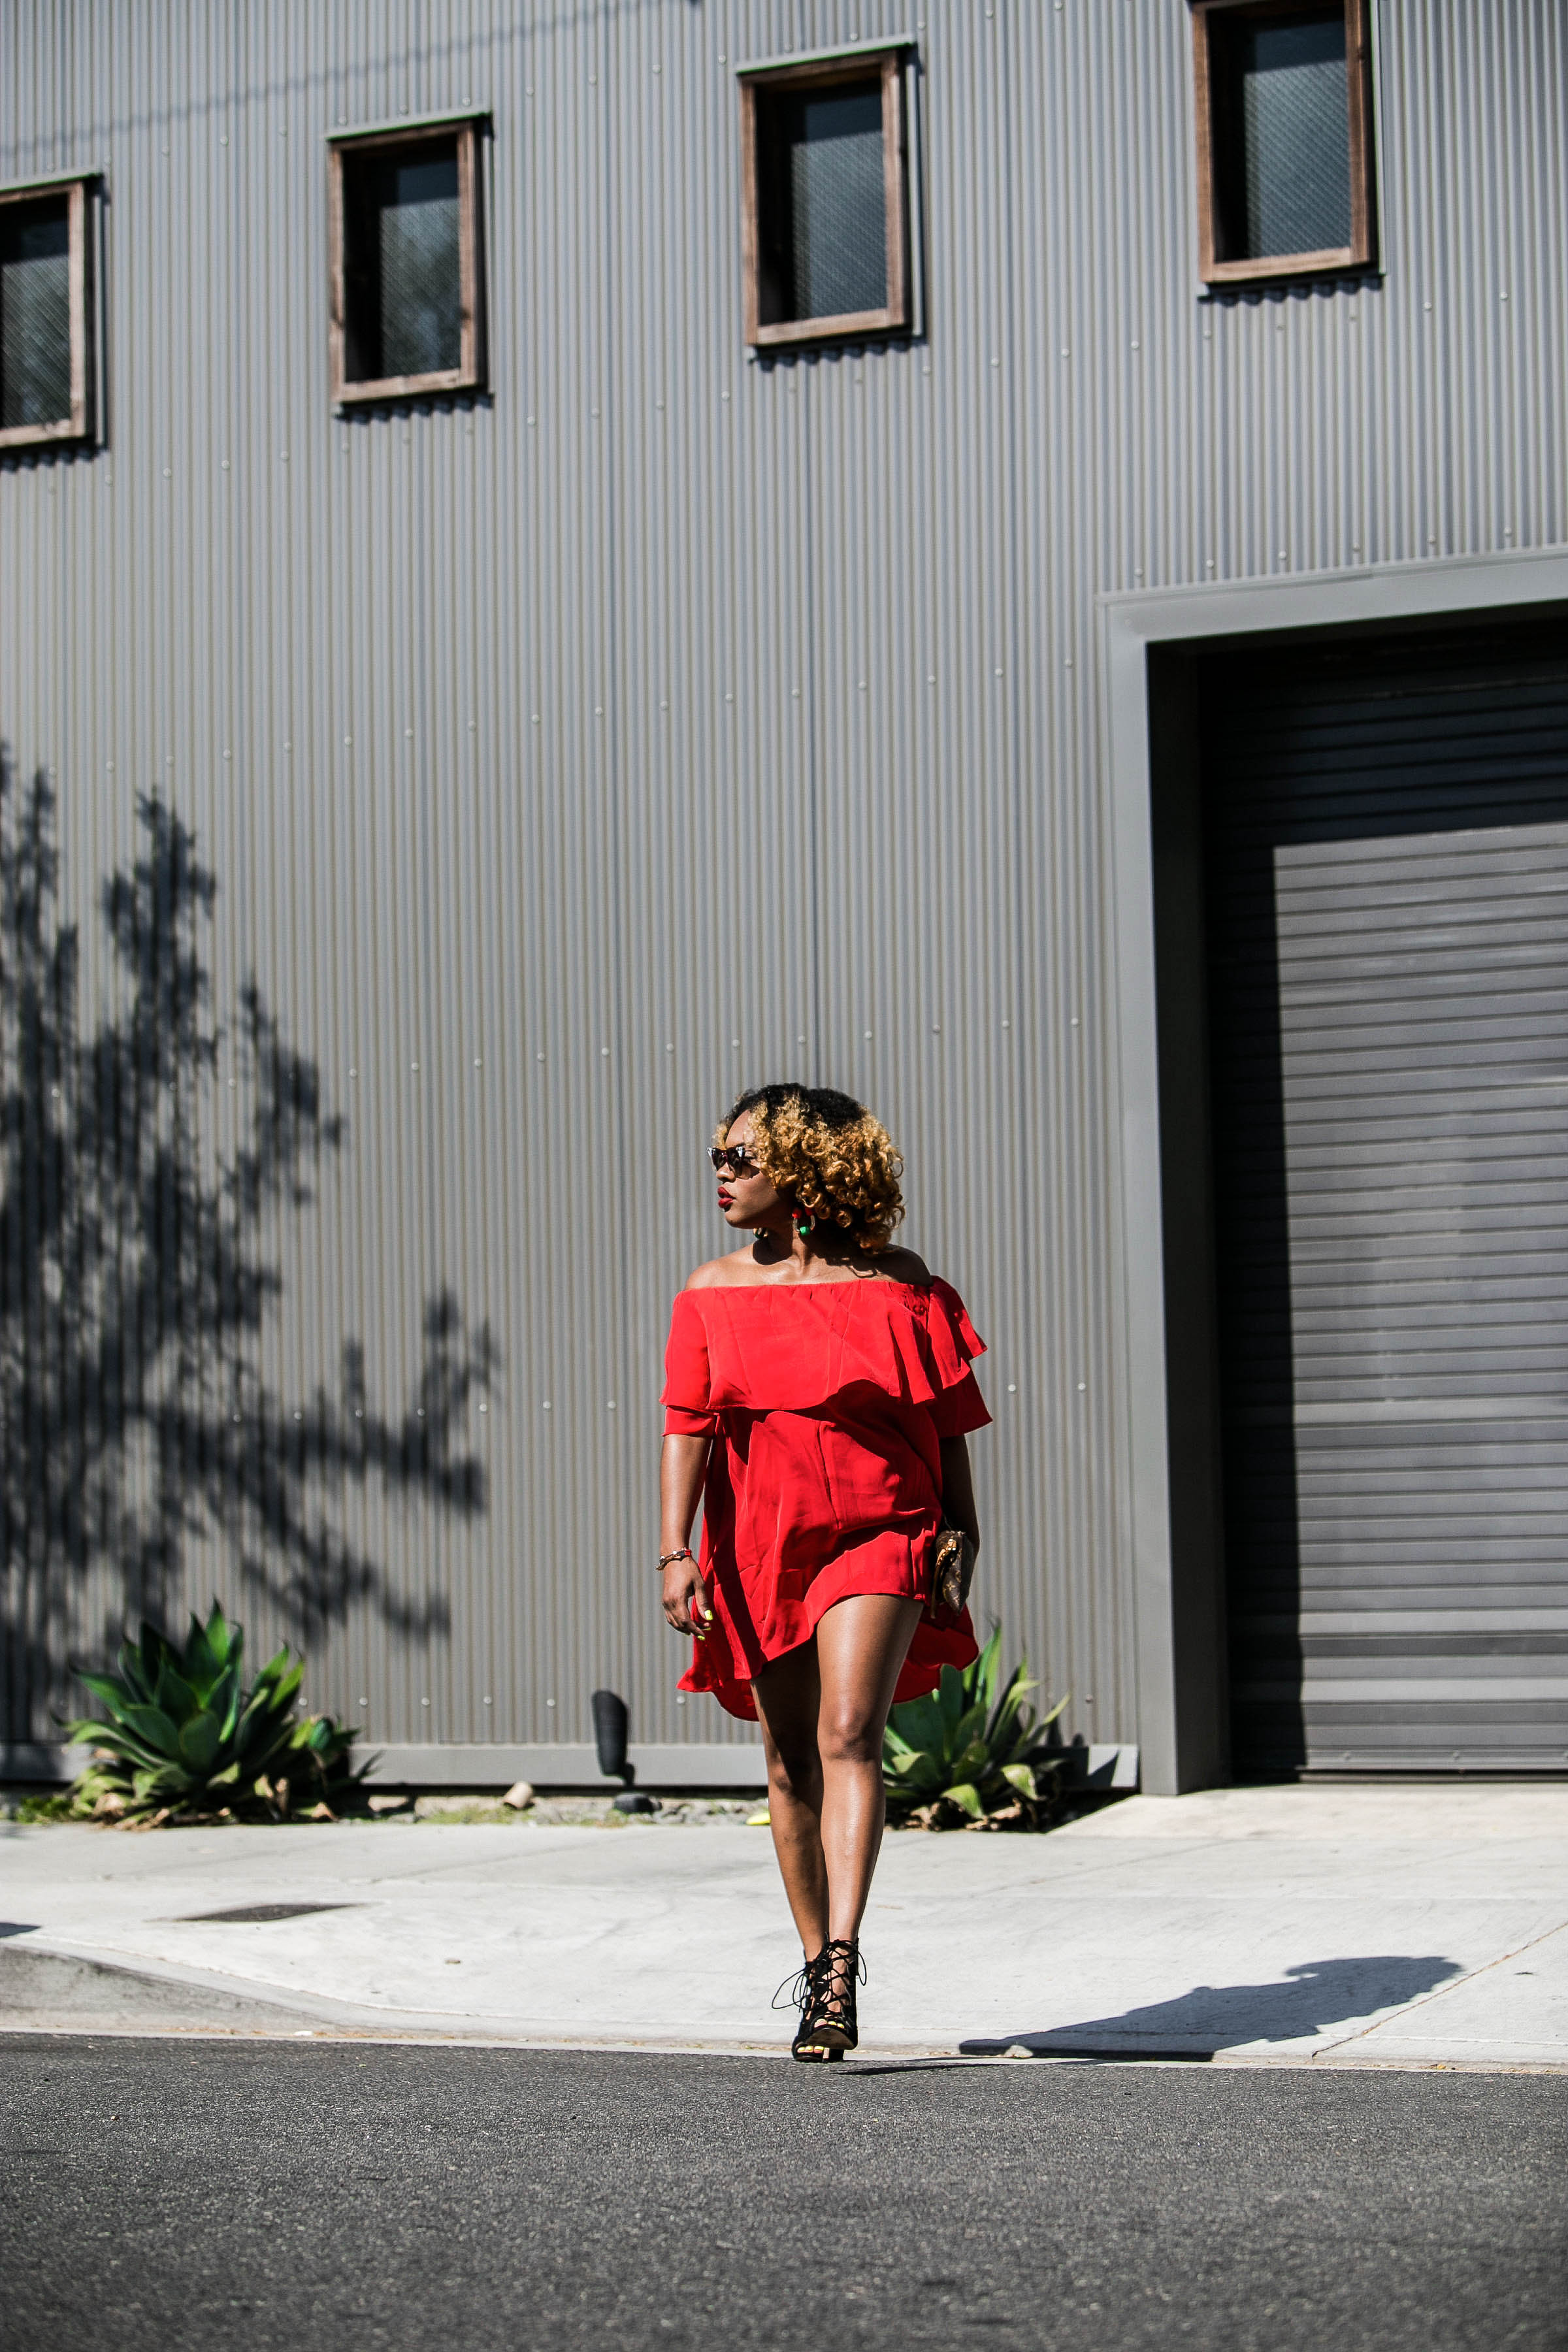 Street Style - https://thehautemommie.com/lady-in-the-red-dress/